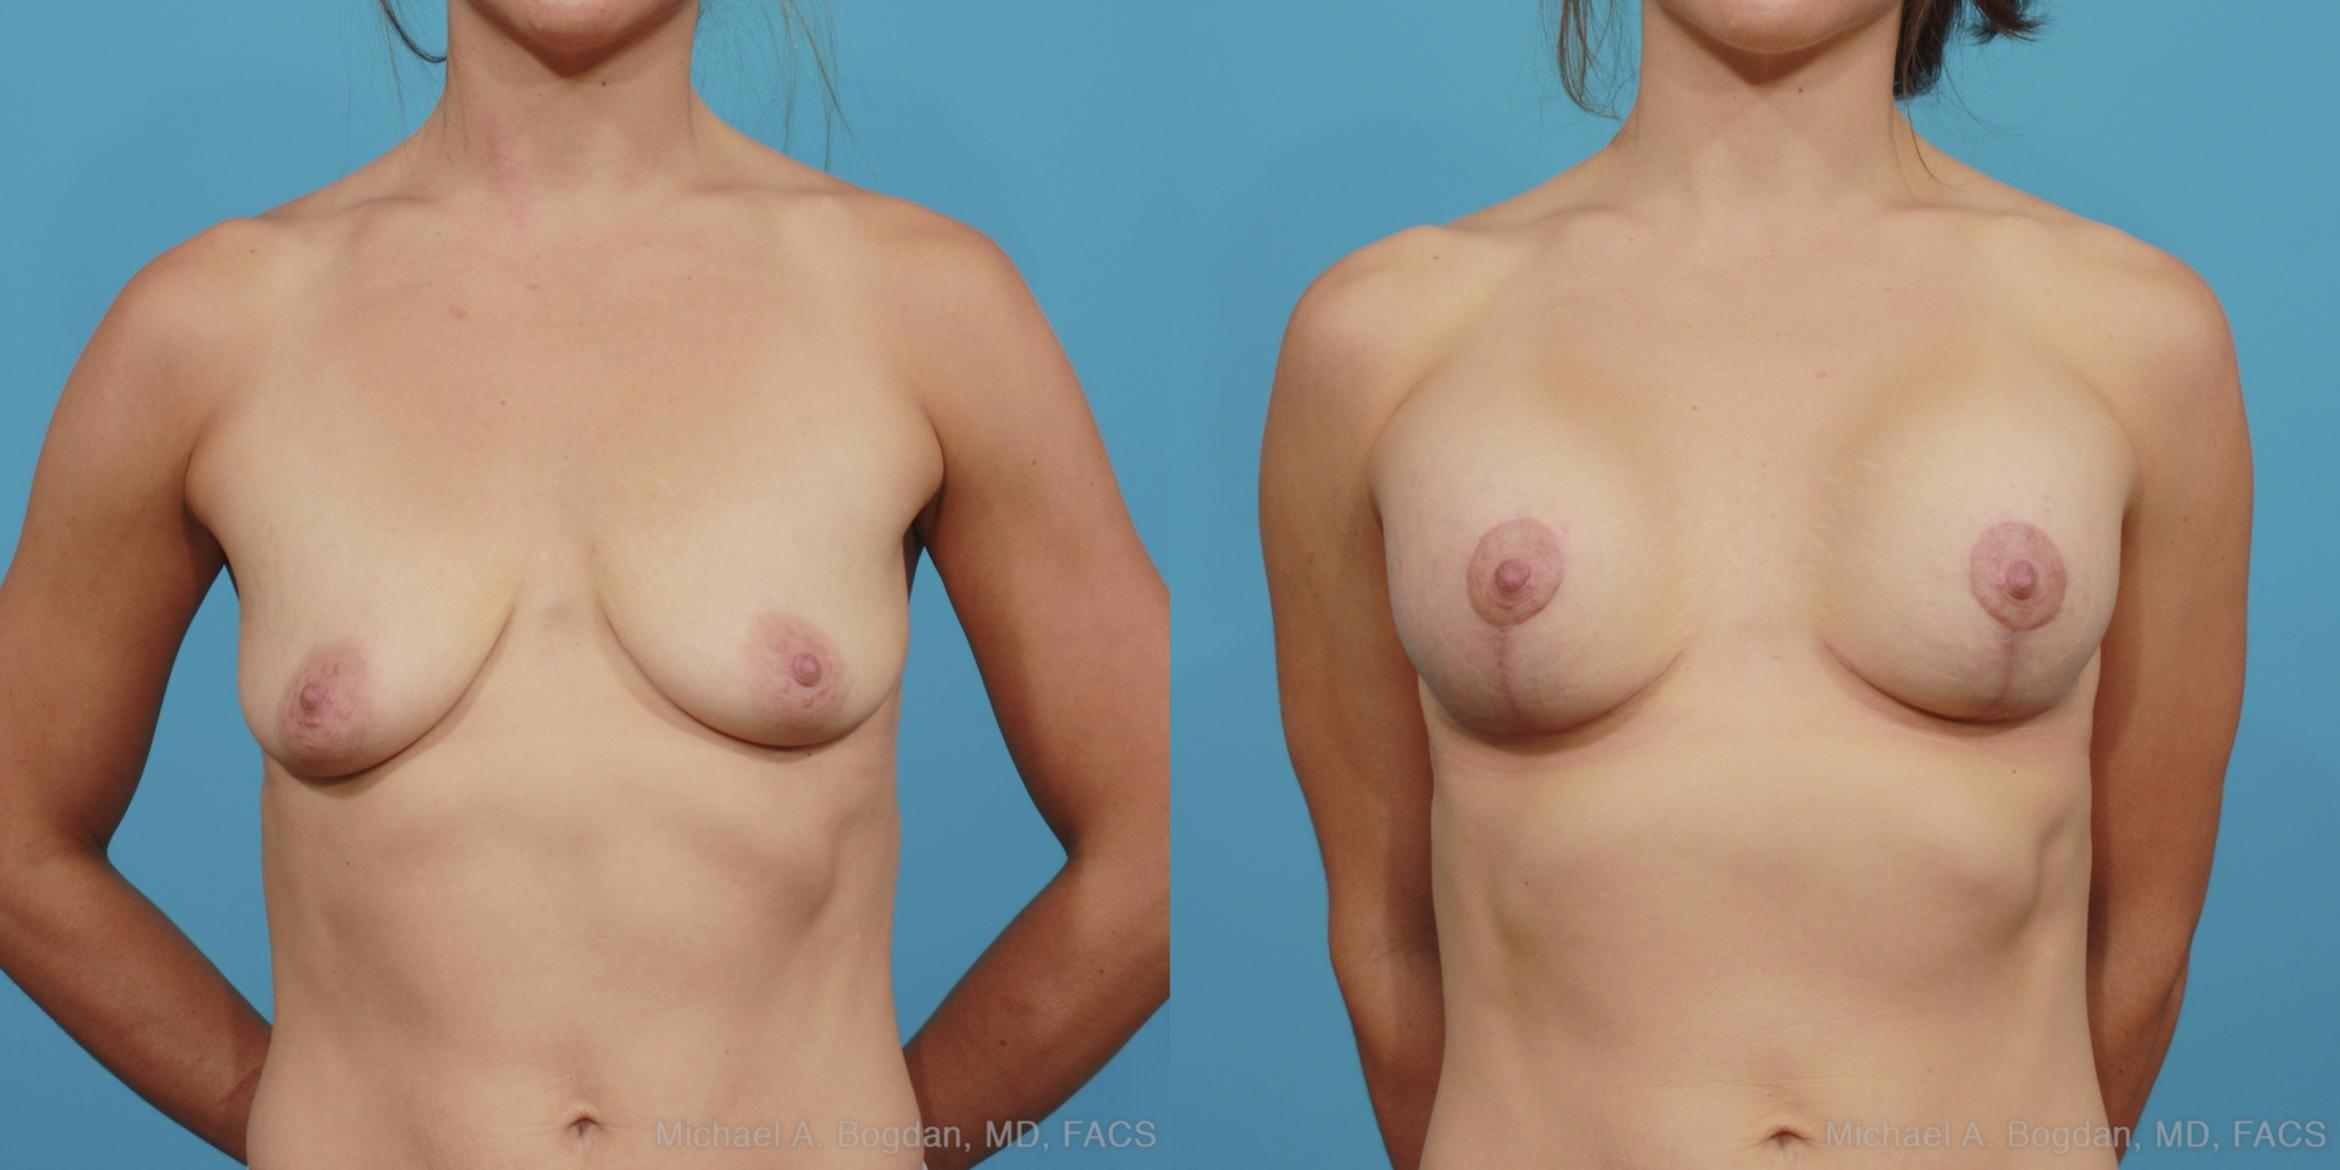 Mastopexy & Augmentation Case 375 Before & After View #1 | Southlake, Texas | Michael A. Bogdan, MD, FACS